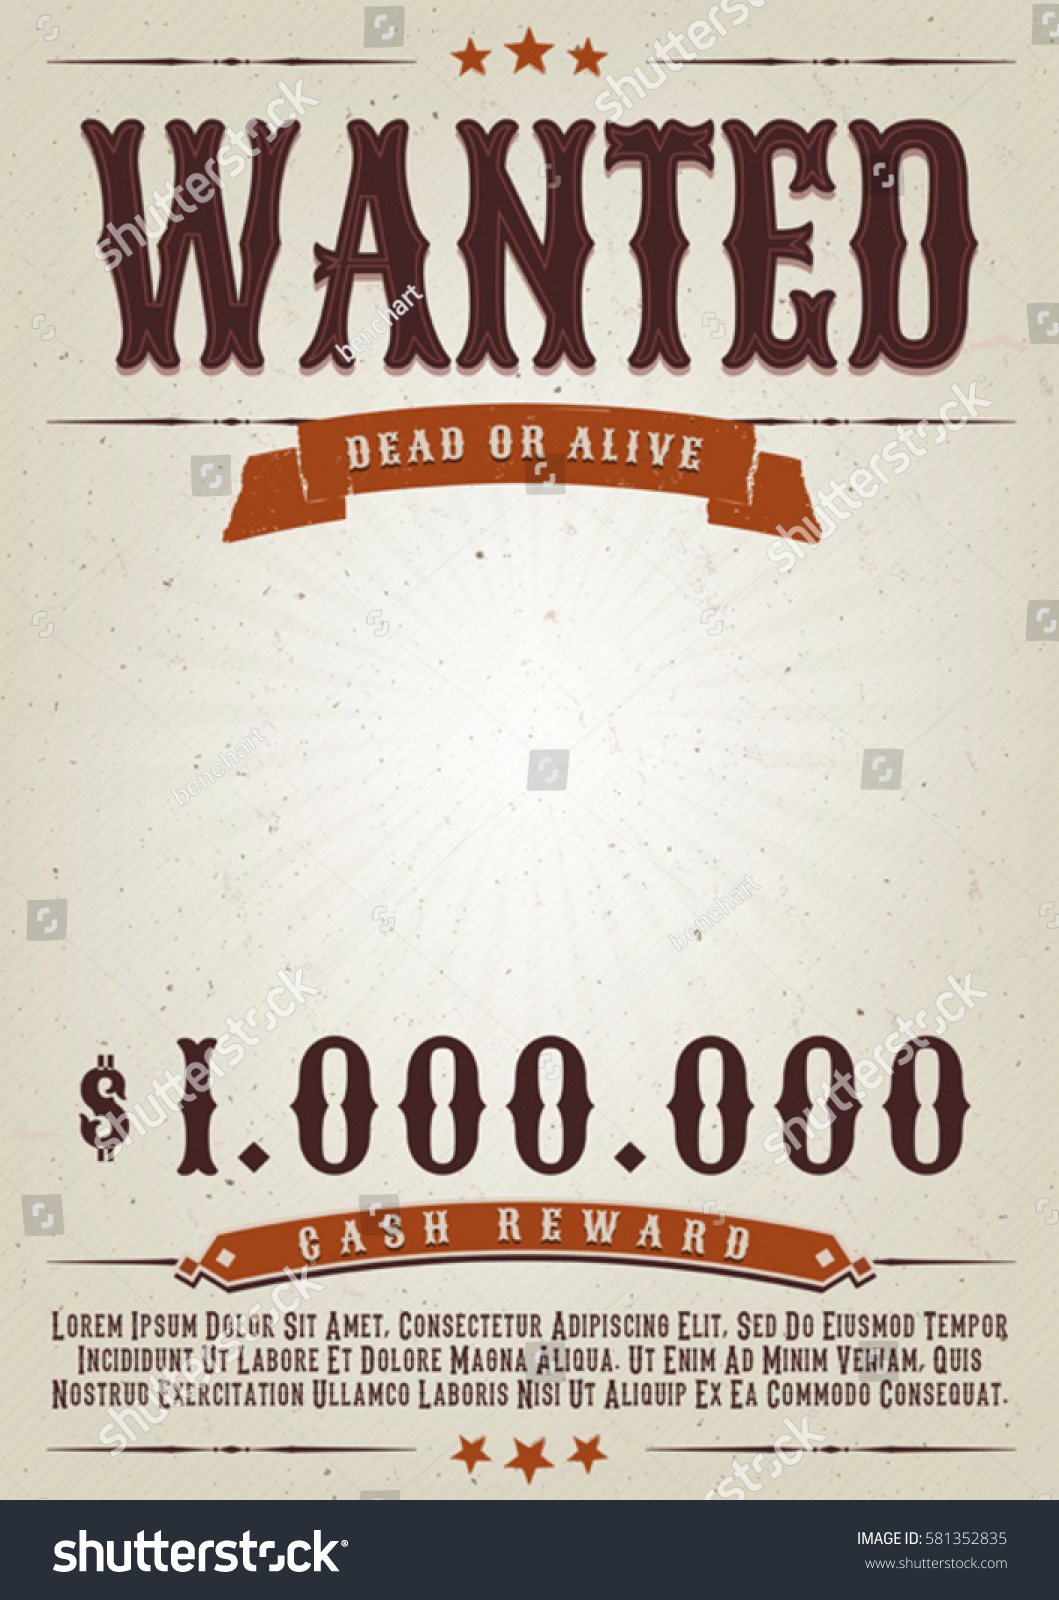 Wanted western movie poster illustration vintage old stock for Wanted dead or alive poster template free